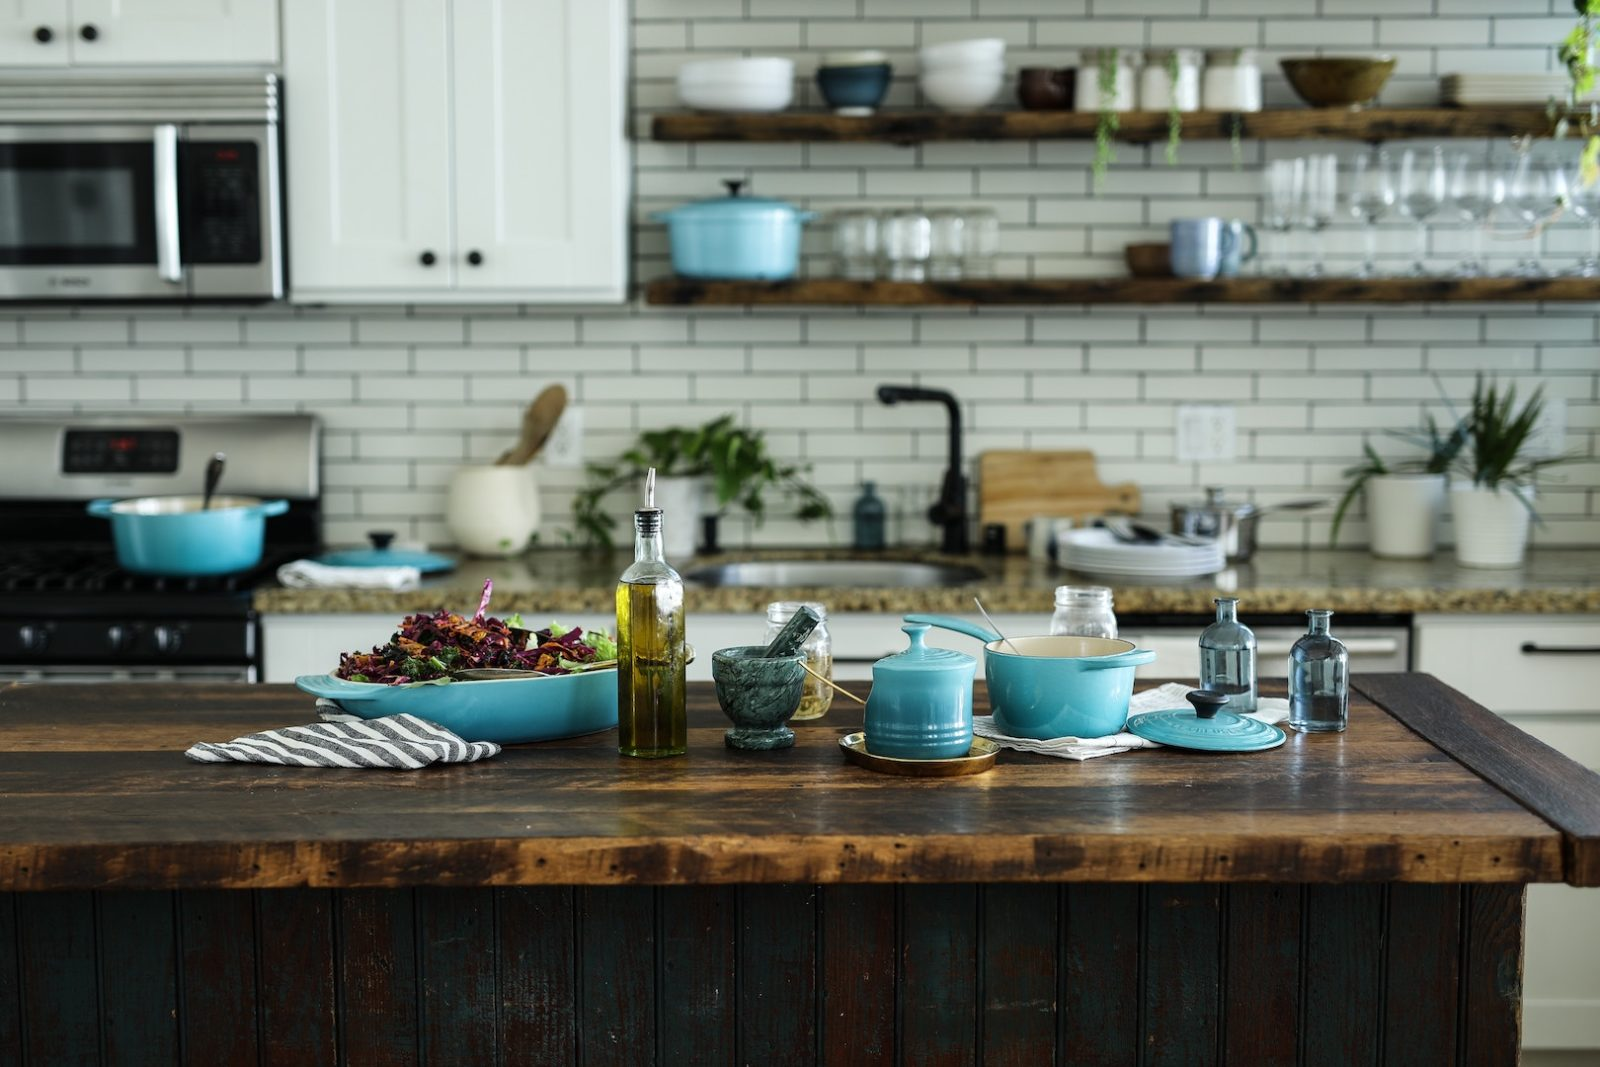 5 IDEAL KITCHEN RENOVATIONS TO ADD VALUE TO YOUR HOME